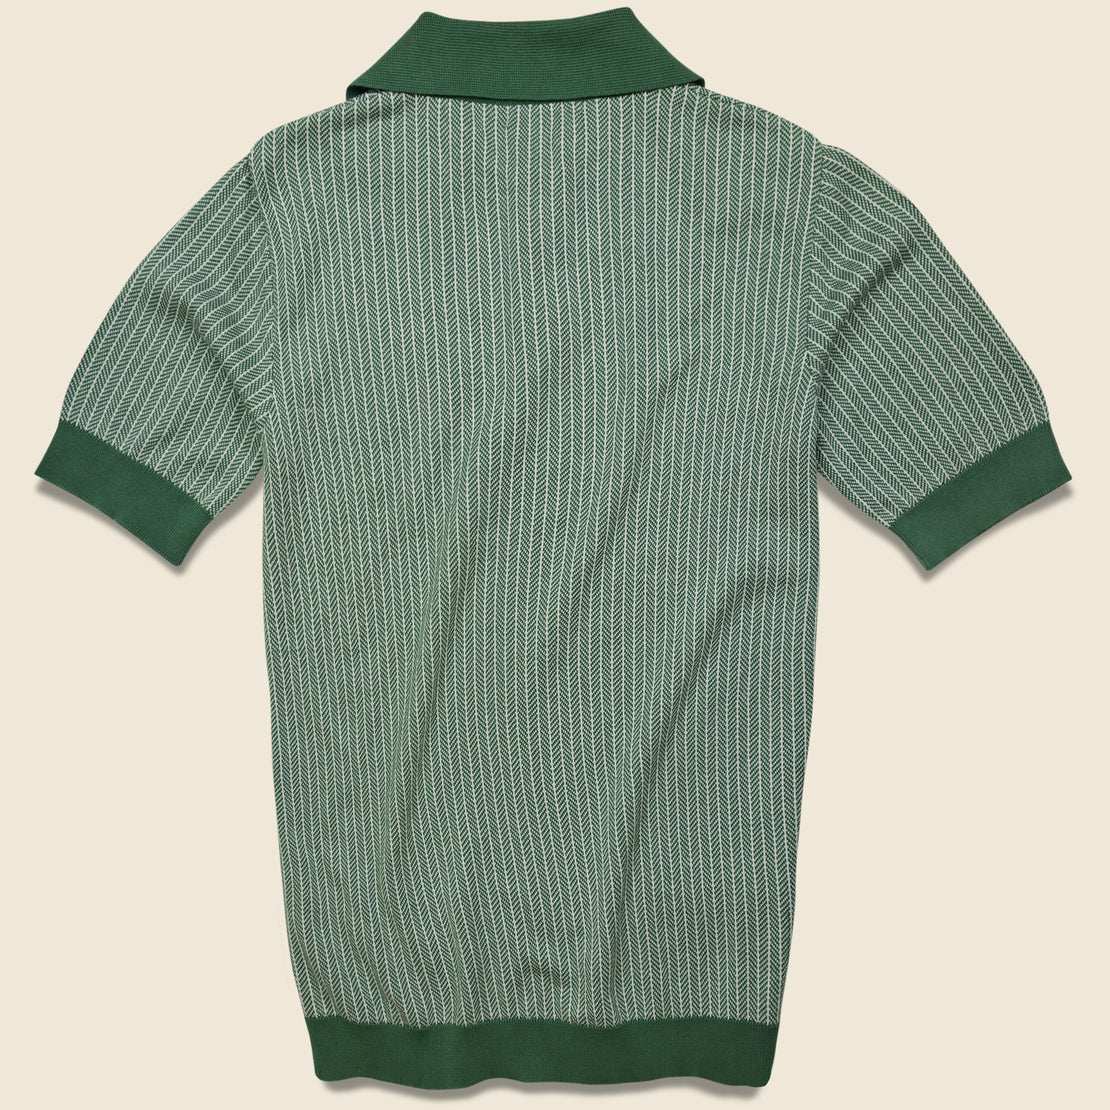 Blakey Knit Polo - Green